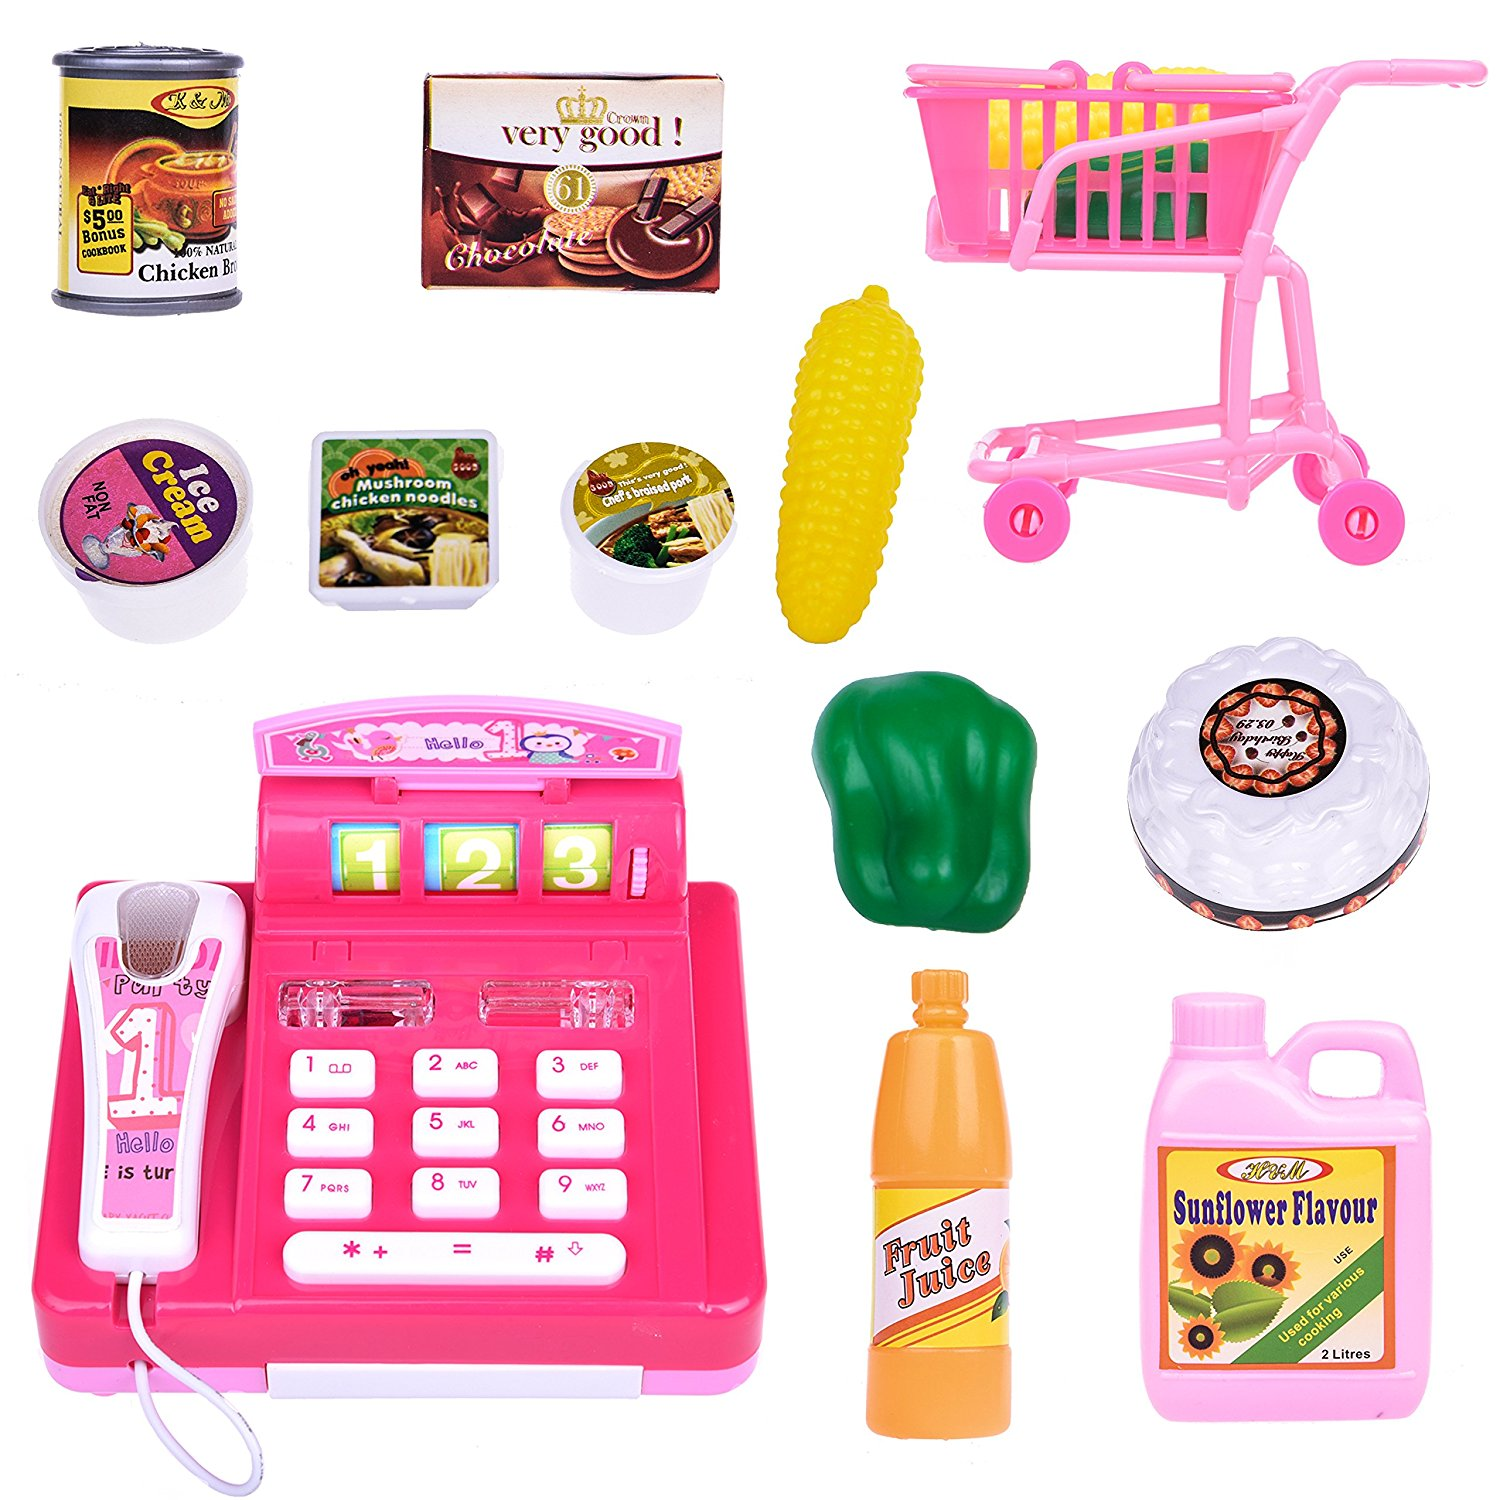 Mini Cash Register Shopping Cart Toys With Groceries and Cashier Telephone Radio Set Kids Gift 10 PCs F-28